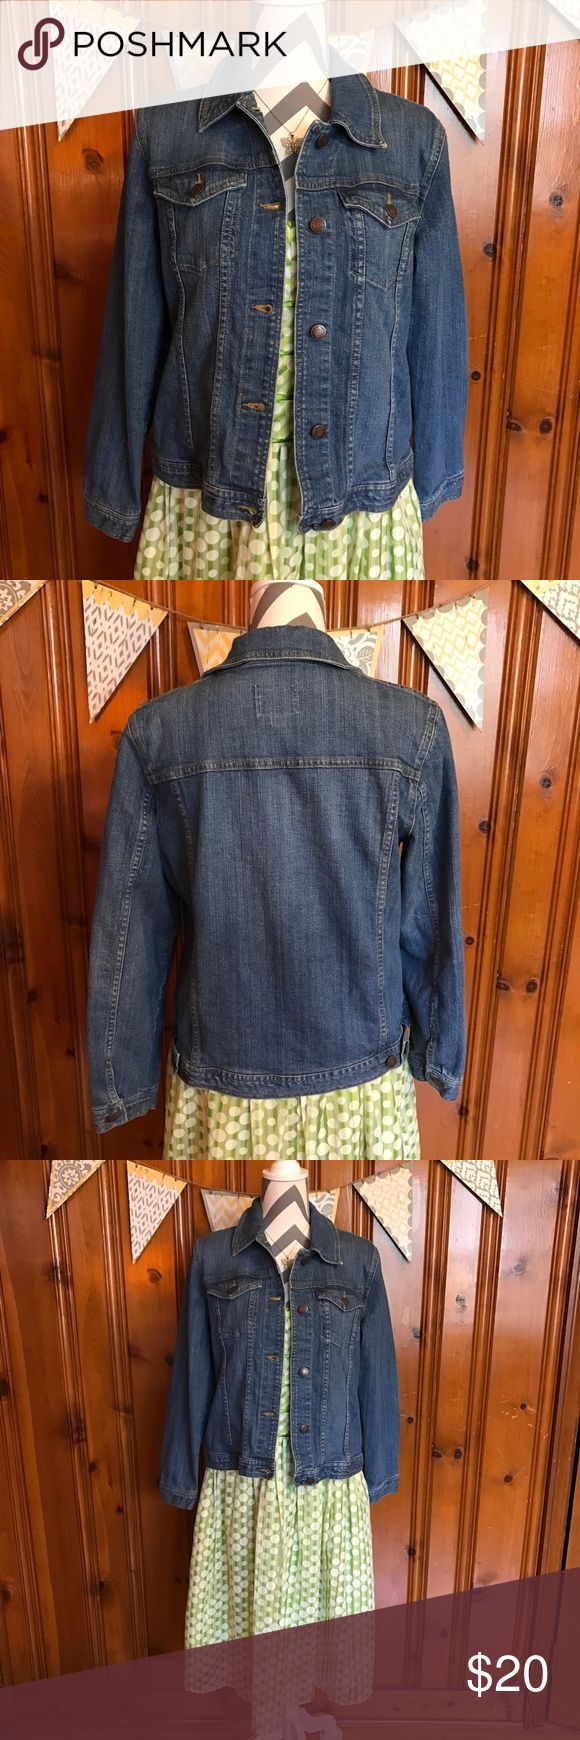 """Essential Jean Jacket This Erin London jean jacket is an essential wardrobe piece. It is in excellent gently used condition. Can be used year round. 97% cotton, and 3% spandex. Stretch Denim.  21"""" bust (armpit to armpit) 21"""" long Erin London Jackets & Coats Jean Jackets"""